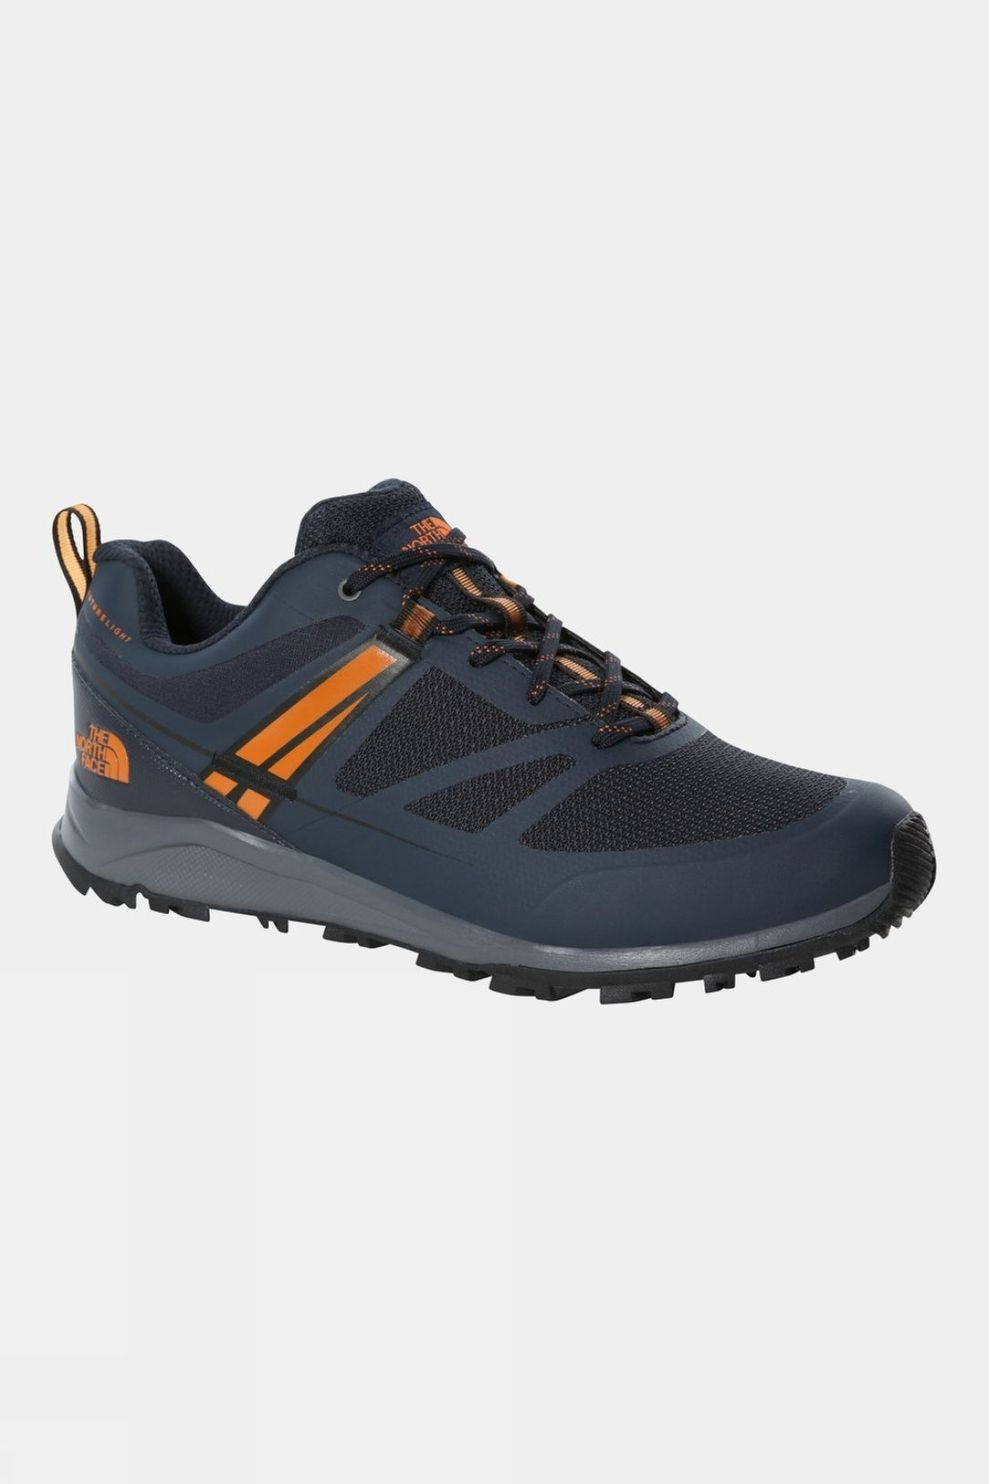 The North Face Mens Litewave Futurelight Shoes